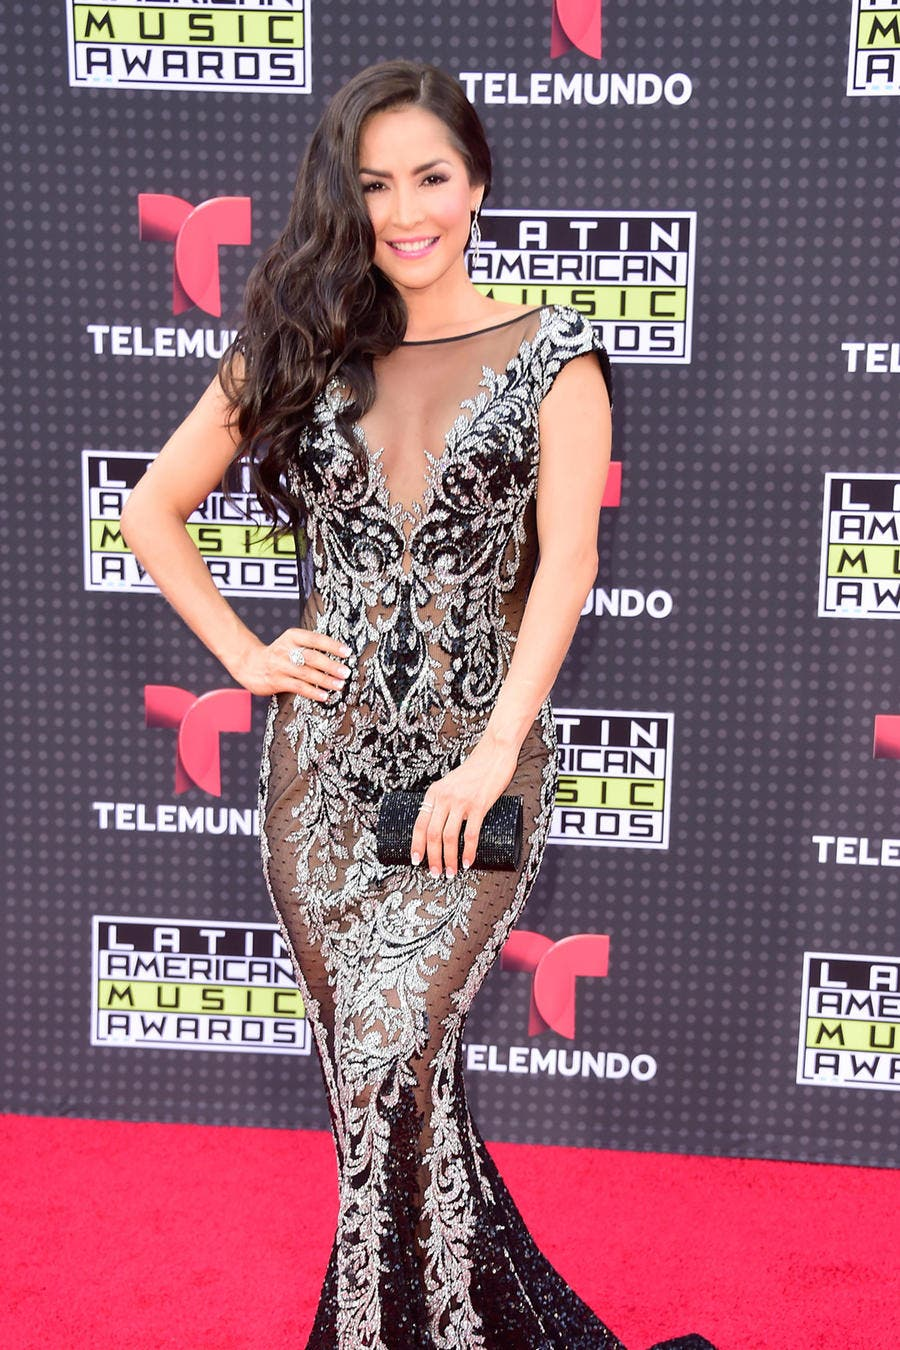 HOLLYWOOD, CA - OCTOBER 08: Carmen Villalobos attends Telemundo's Latin American Music Awards at the Dolby Theatre on October 8, 2015 in Hollywood, California. (Photo by Frazer Harrison/Getty Images)